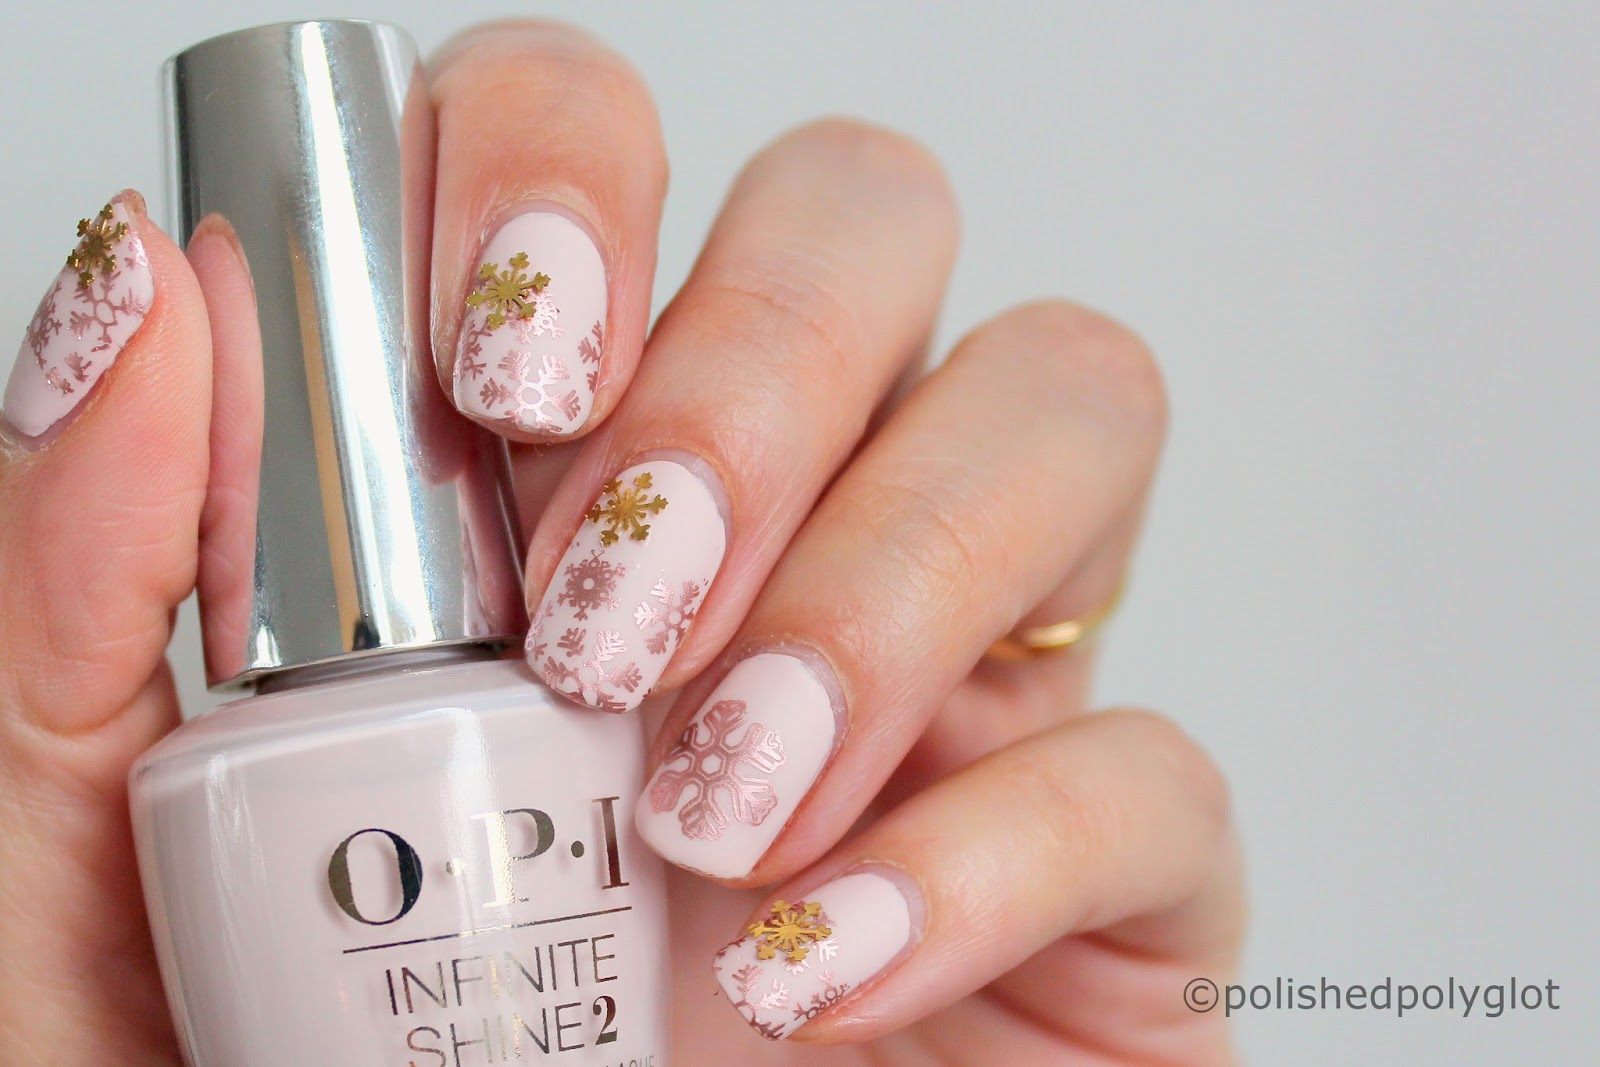 Us To Create A Golden Snowflakes Manicure And The 26 Great Nail Art Ideas Challenge That Invited Do An Embellished 3D Design